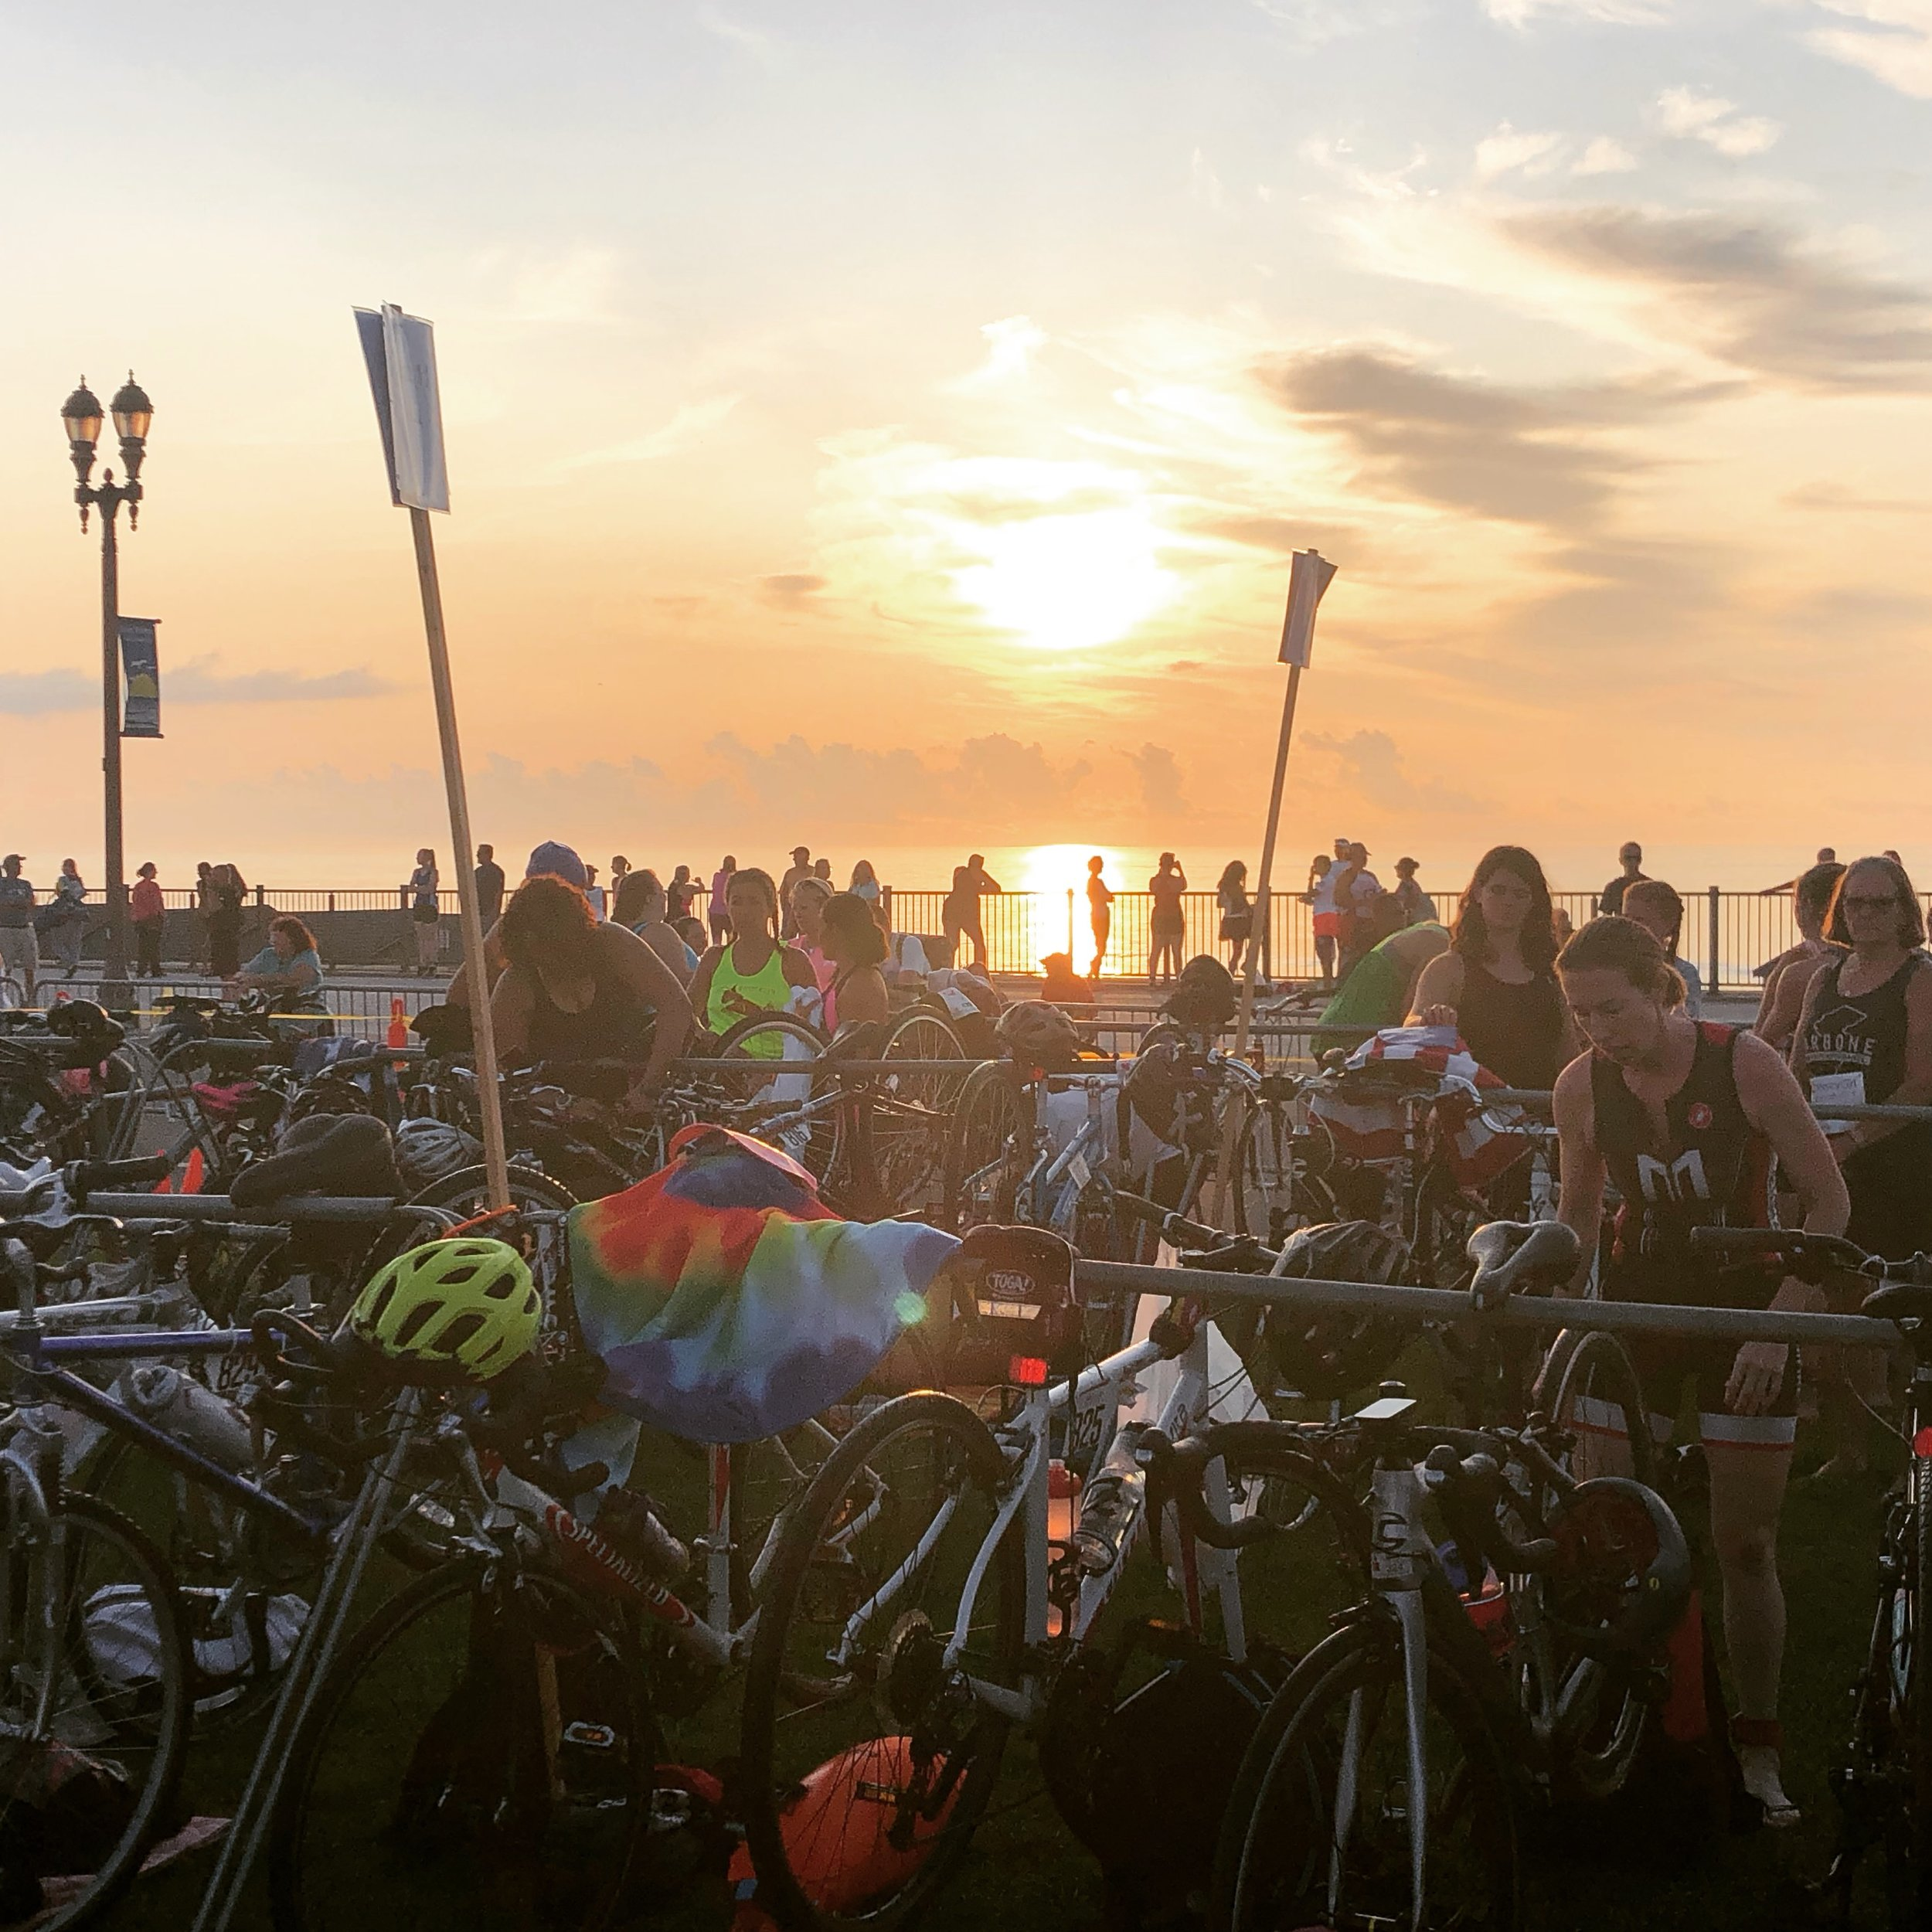 Getting ready for an ocean swim on the Jersey Shore